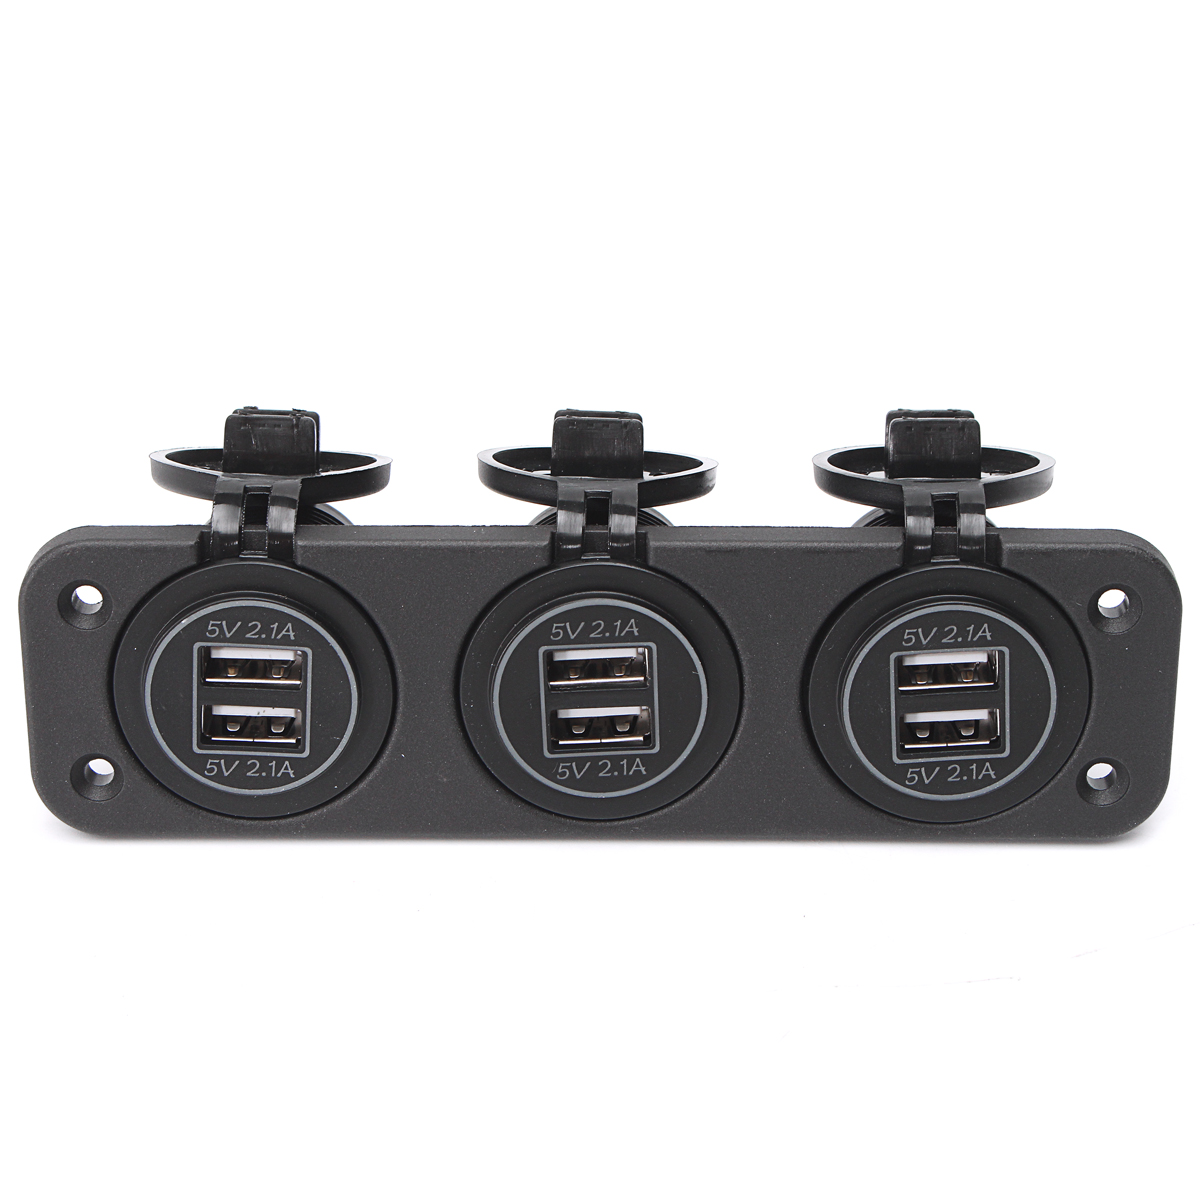 12~24V 2.1A Car 6 Ports USB Socket Outlet Splitter Power Supply Charger Adapter